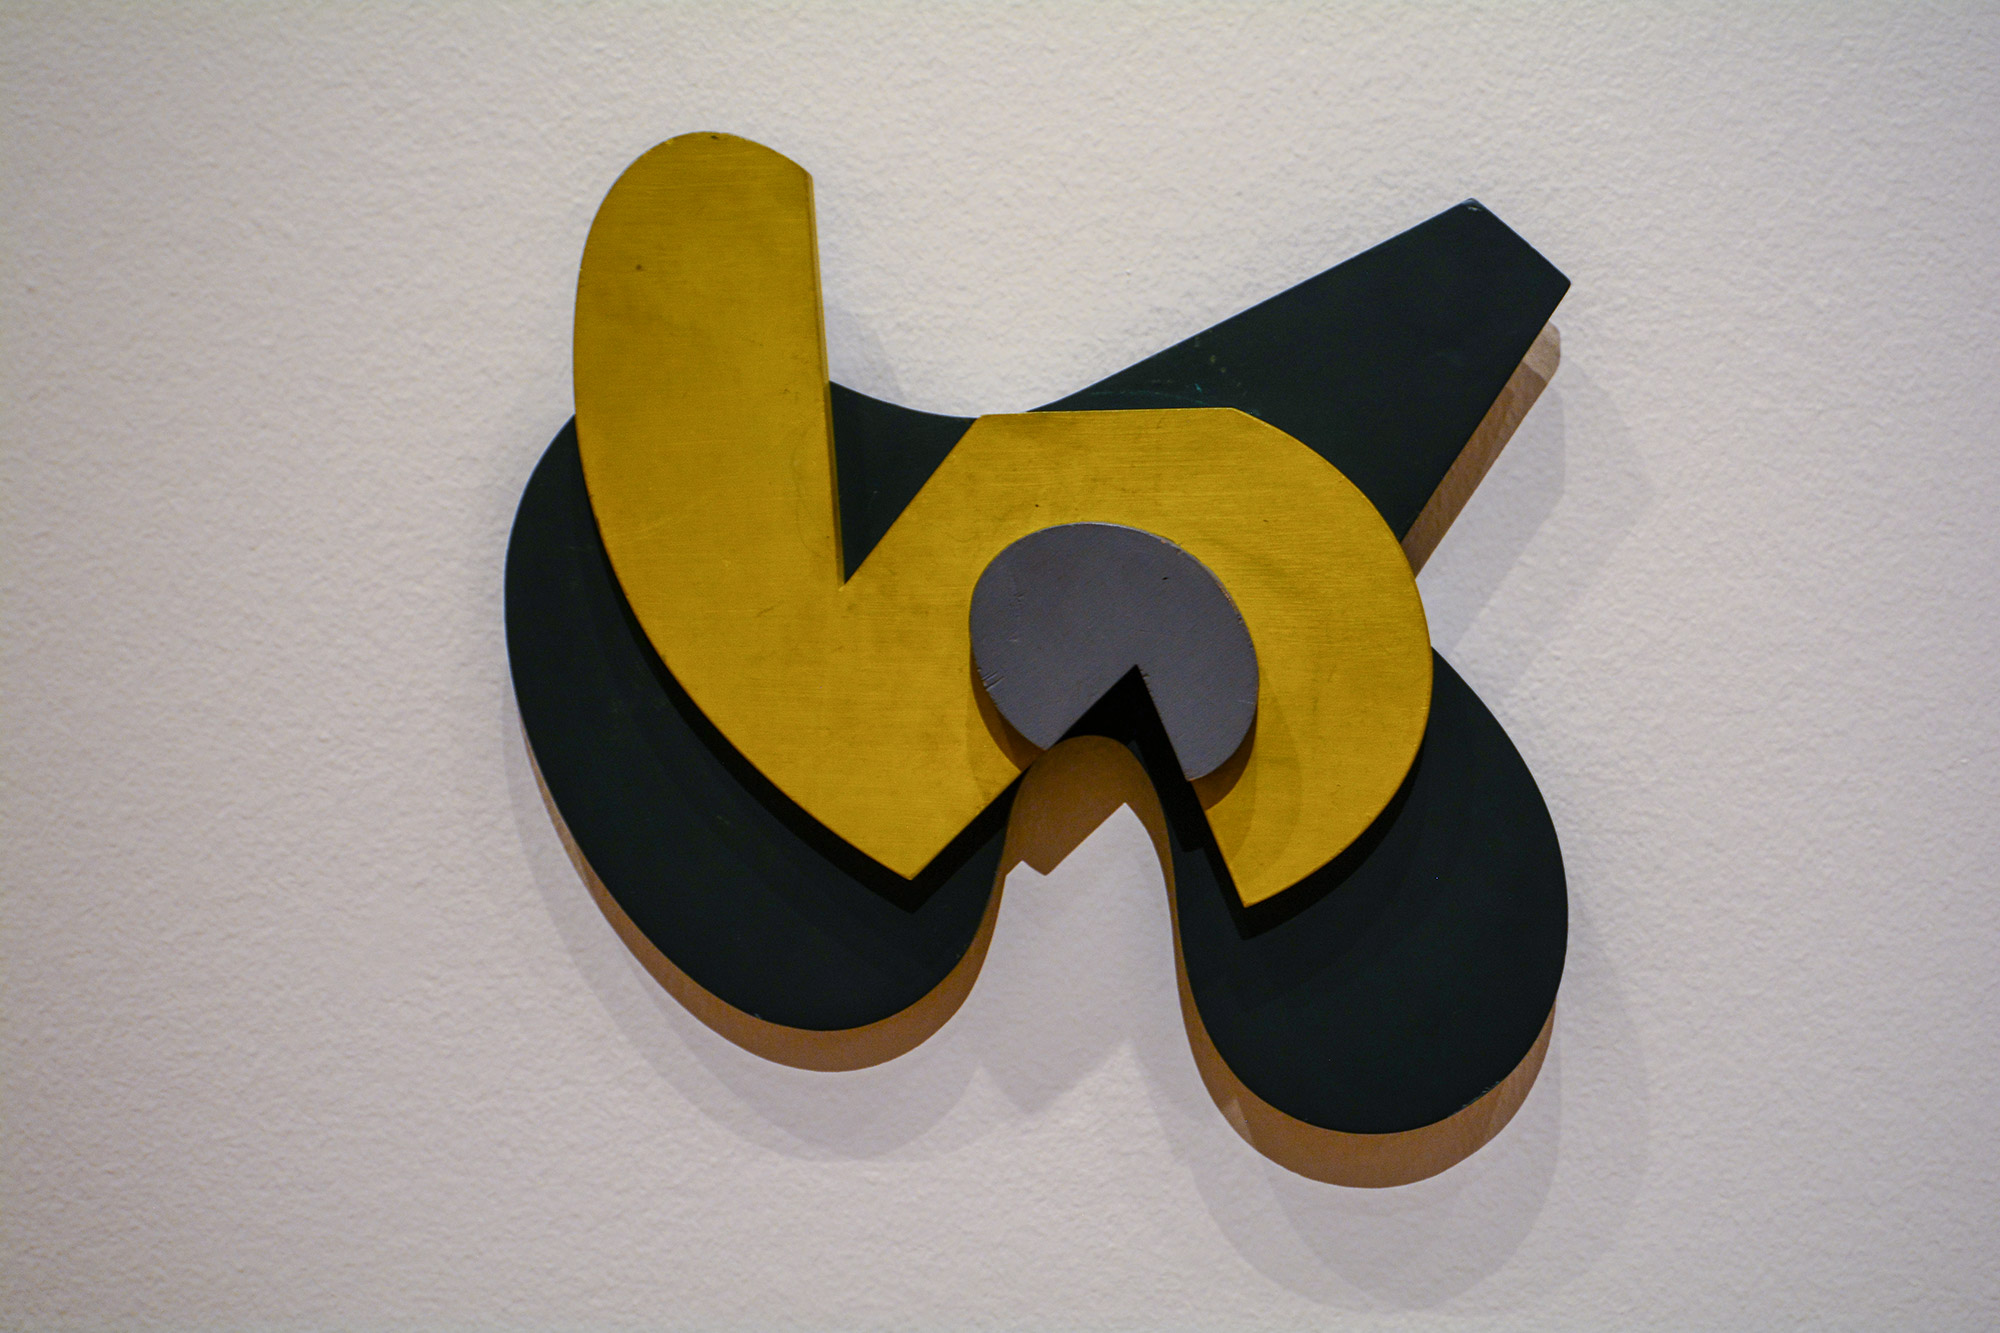 Balance, wall sculpture by Arp